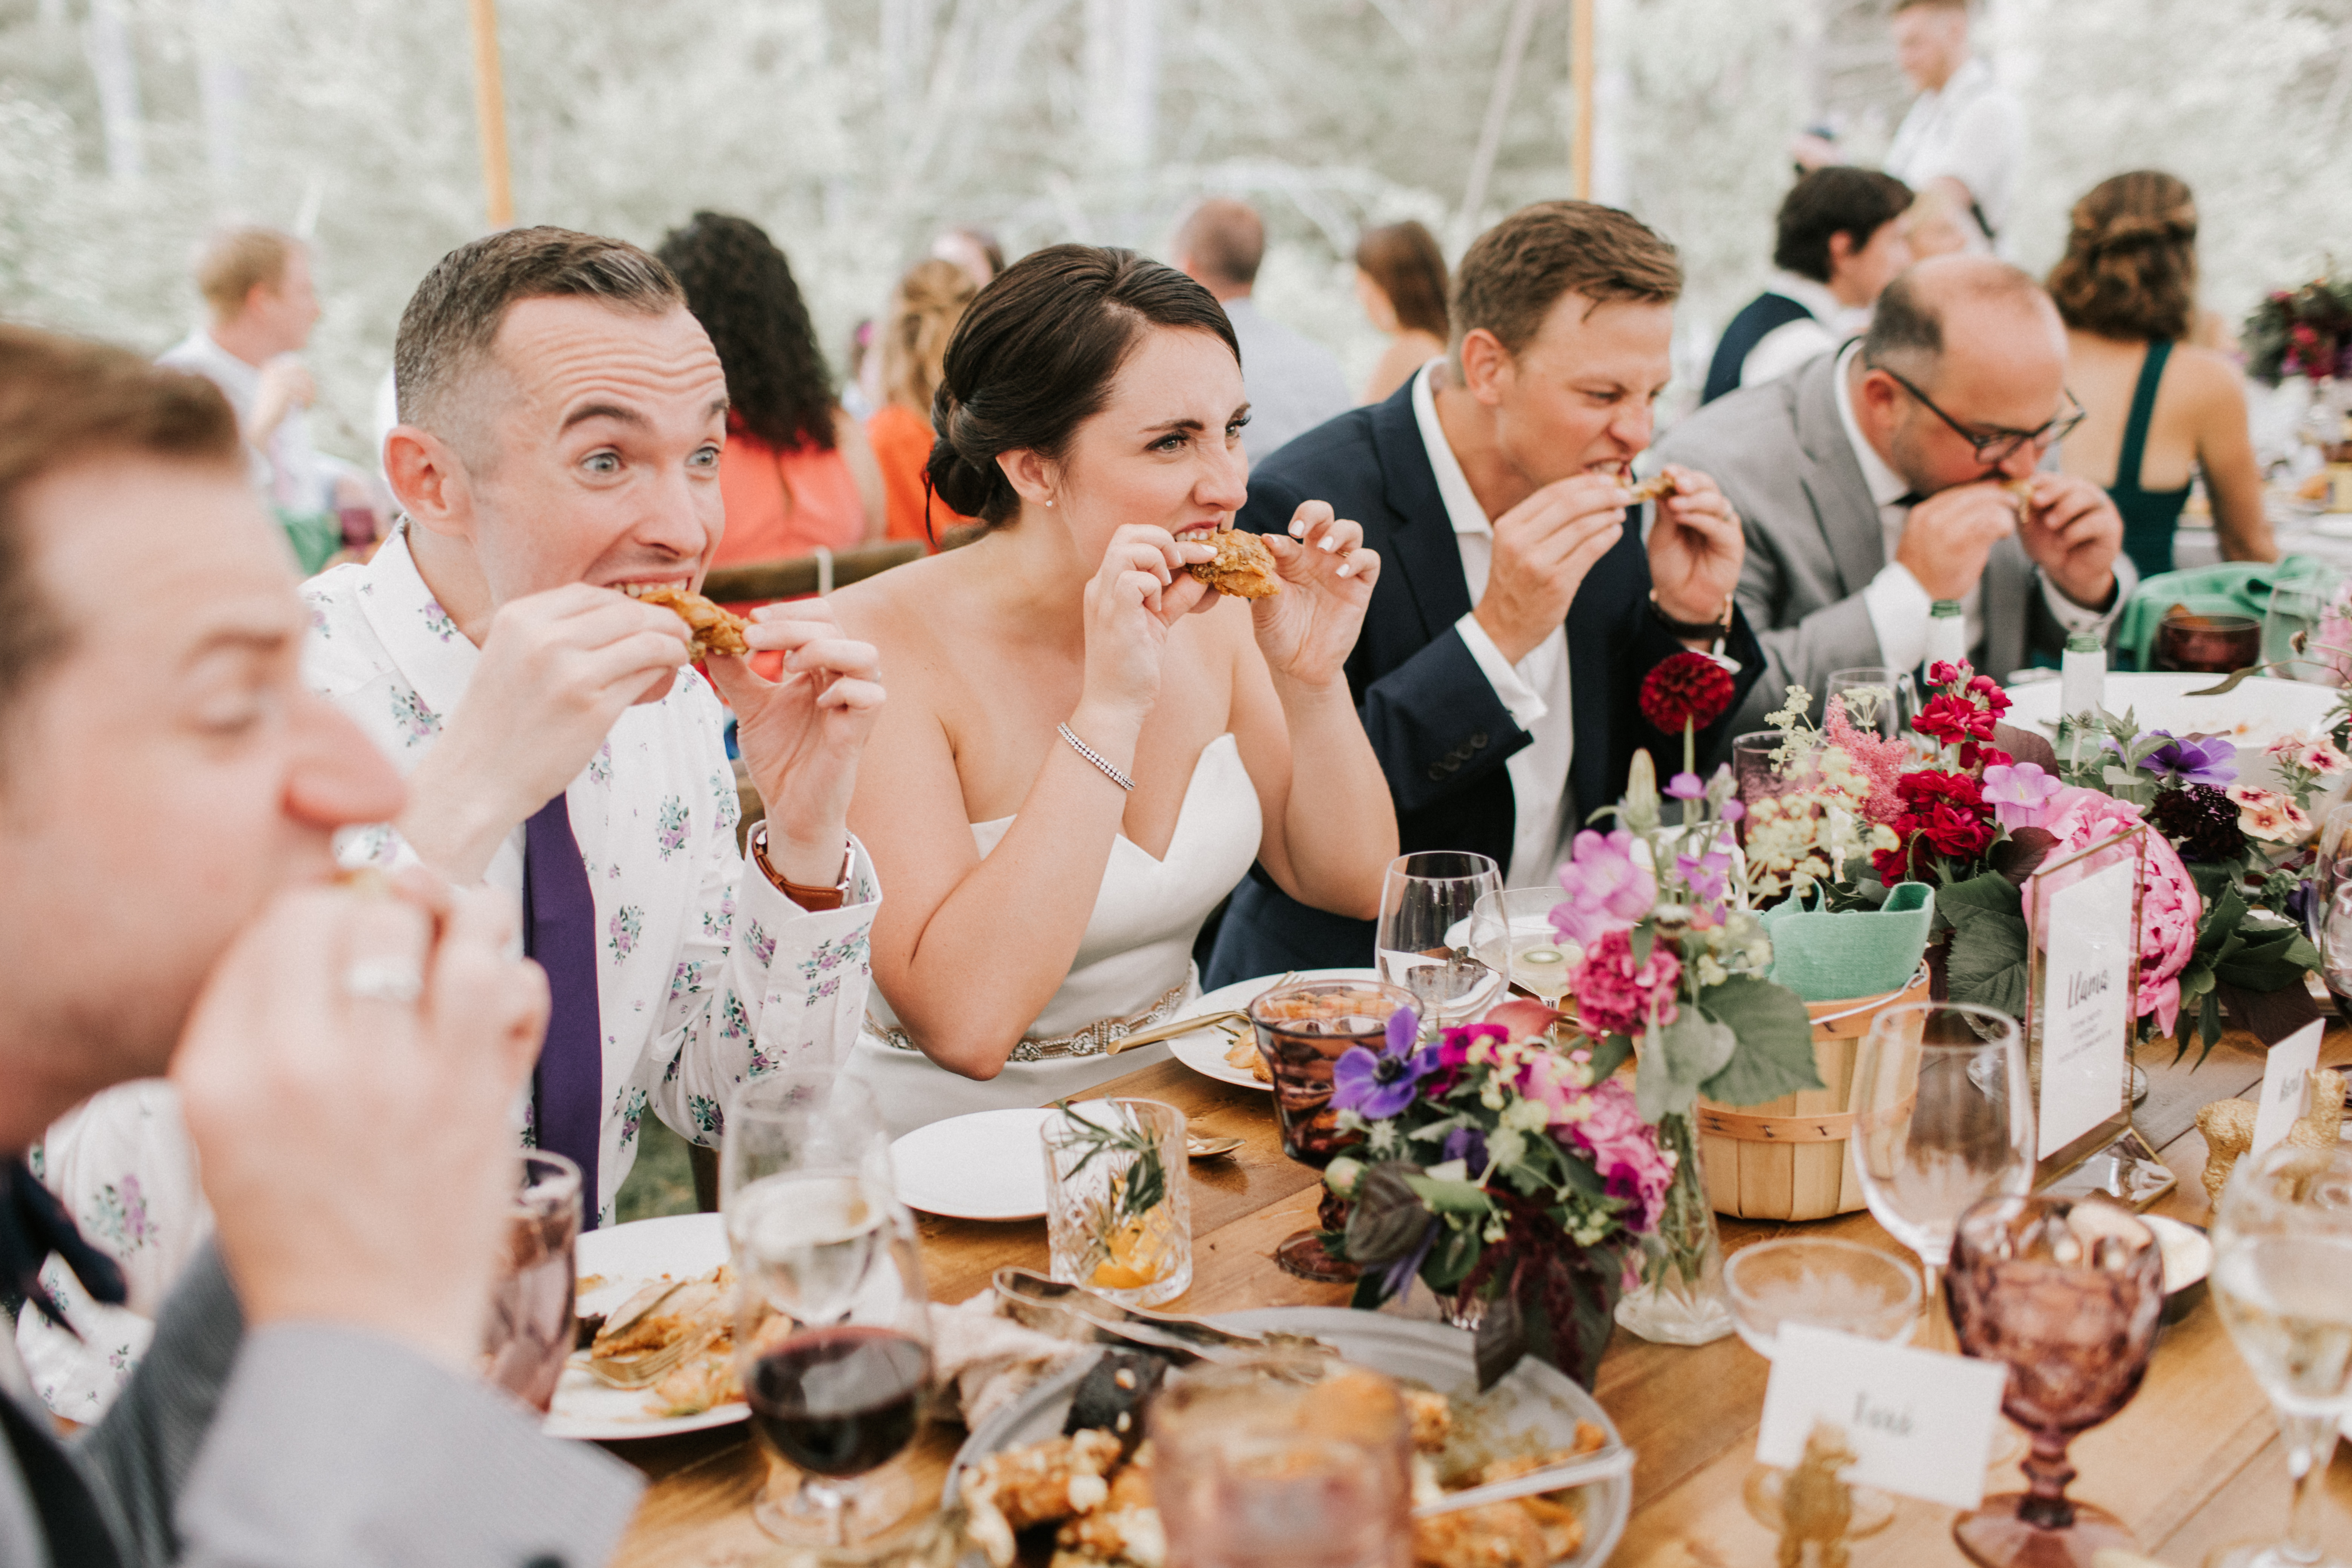 Wedding guests eating fried chicken at Hidden Pond Wedding in Kennebunkport, Maine